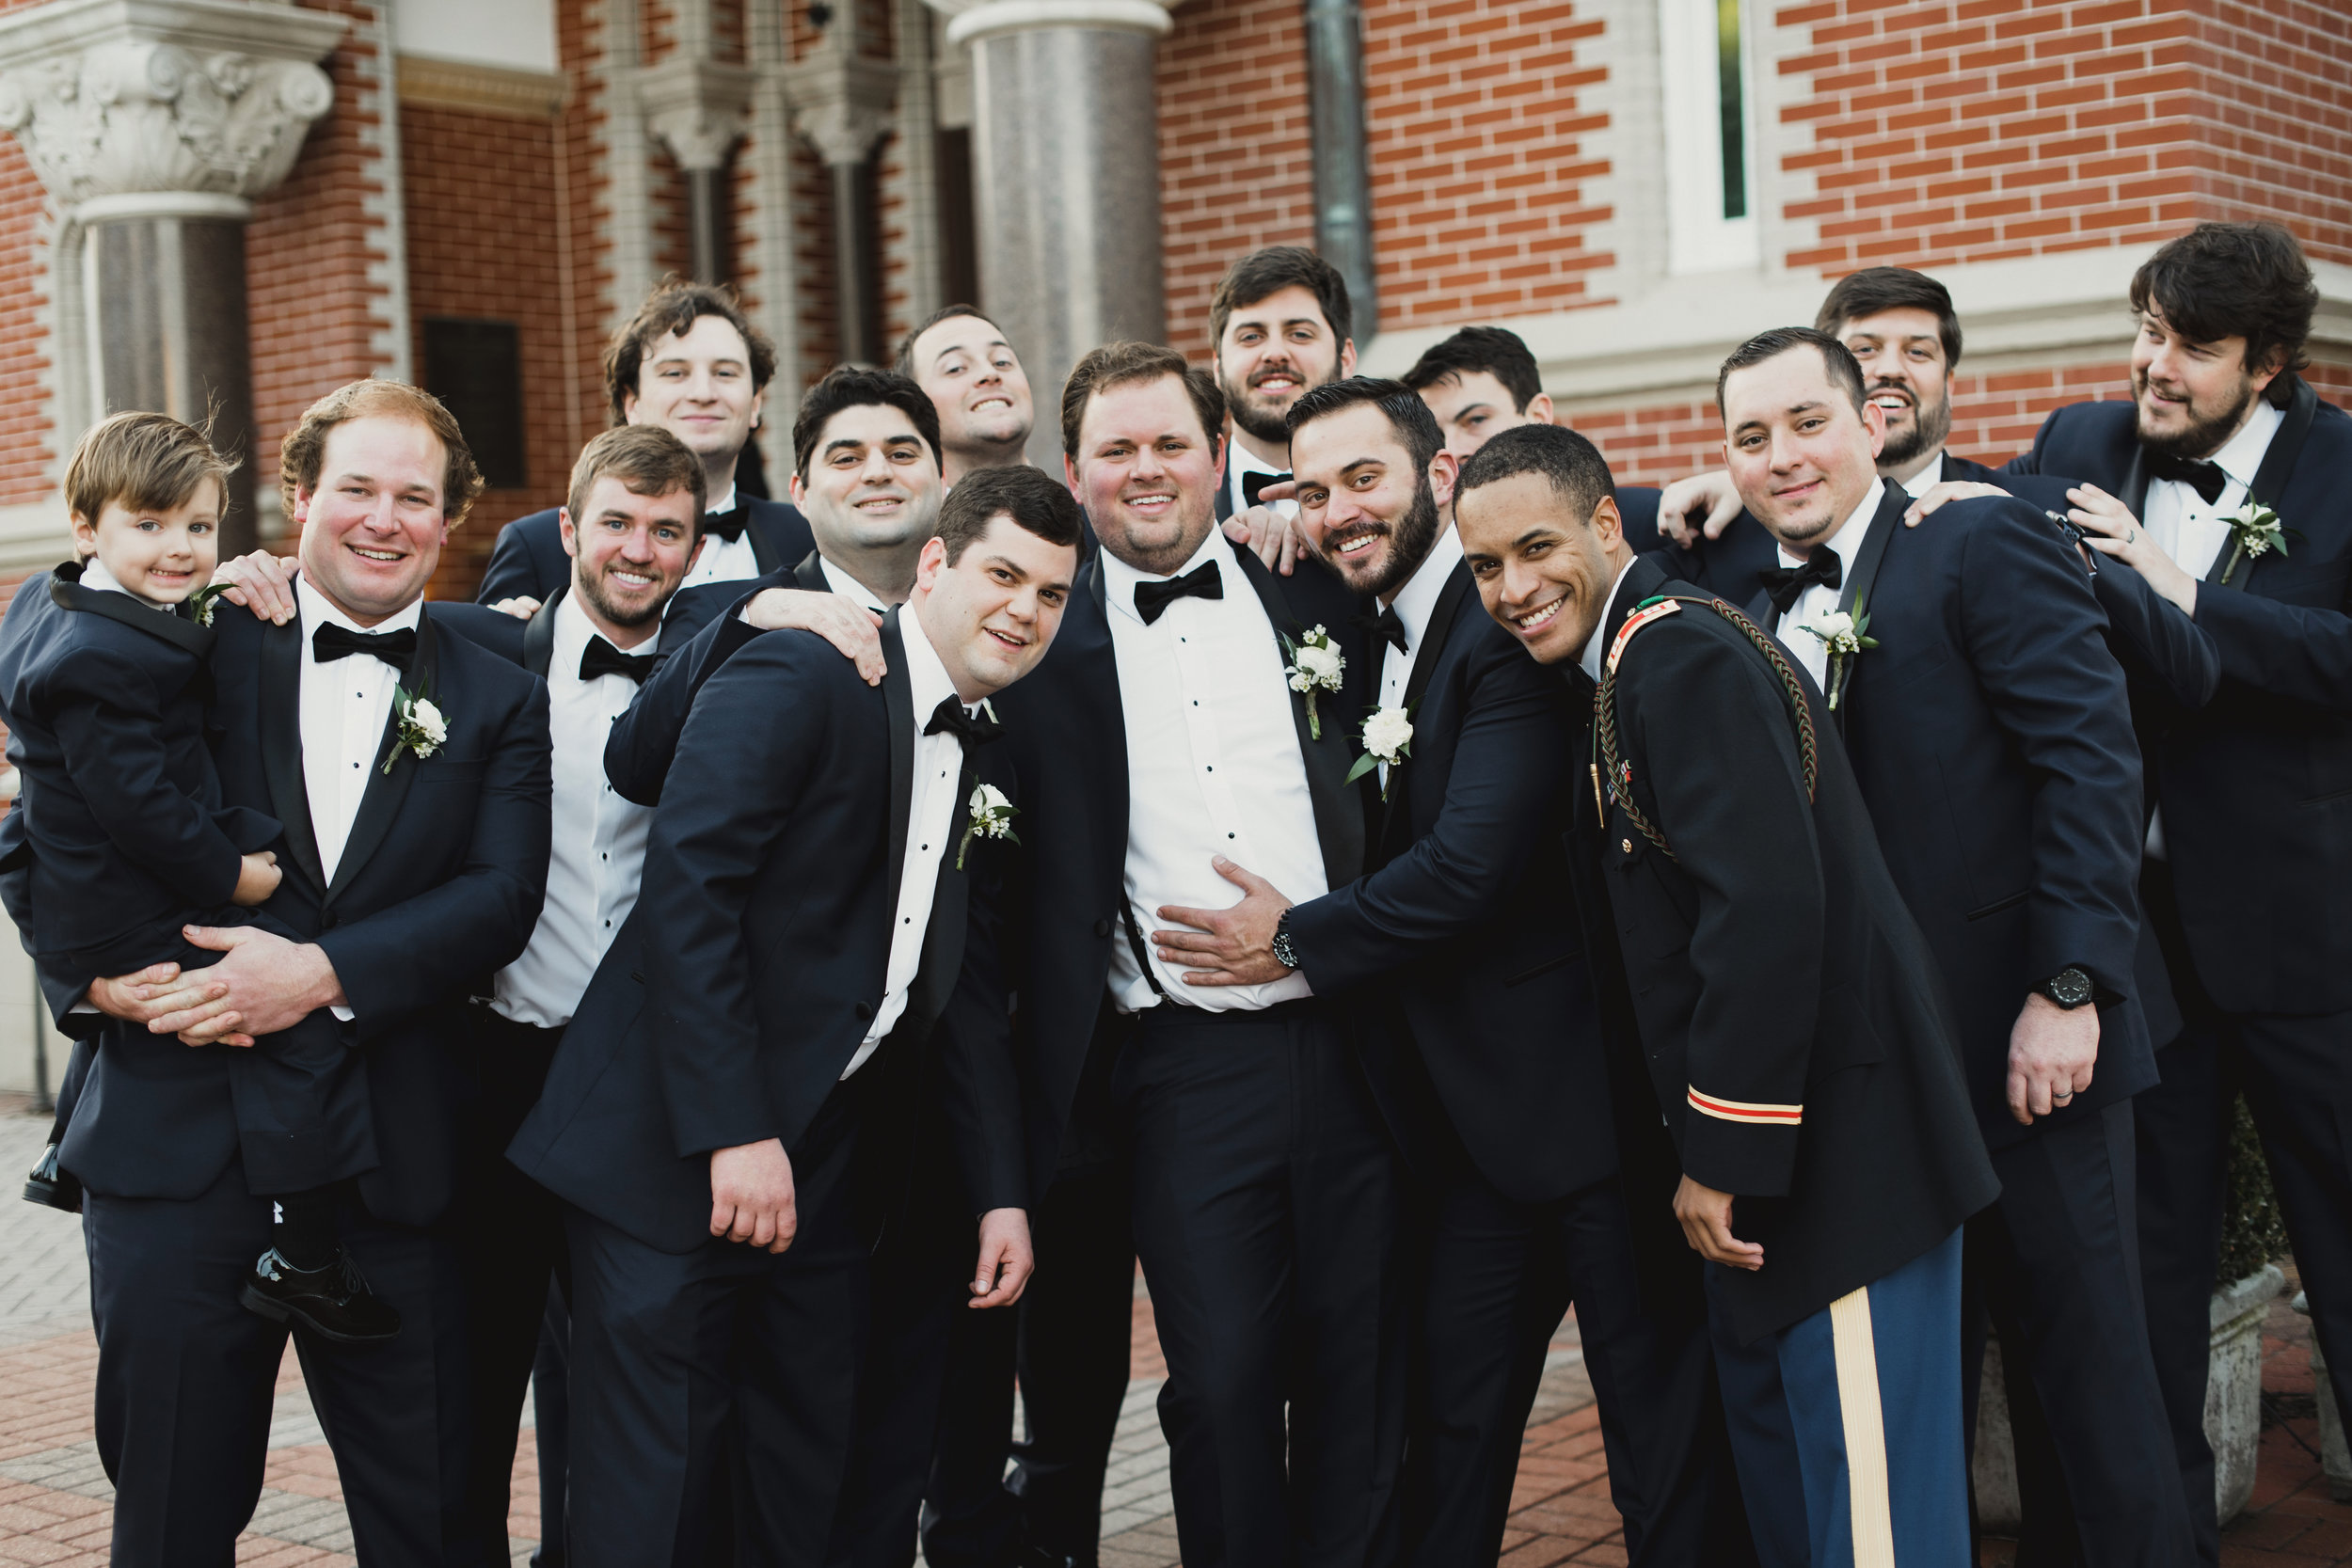 Southern Fete, Southern Wedding, Groom and Groomsman, Kimbrali Photography, Flowers by Rodney